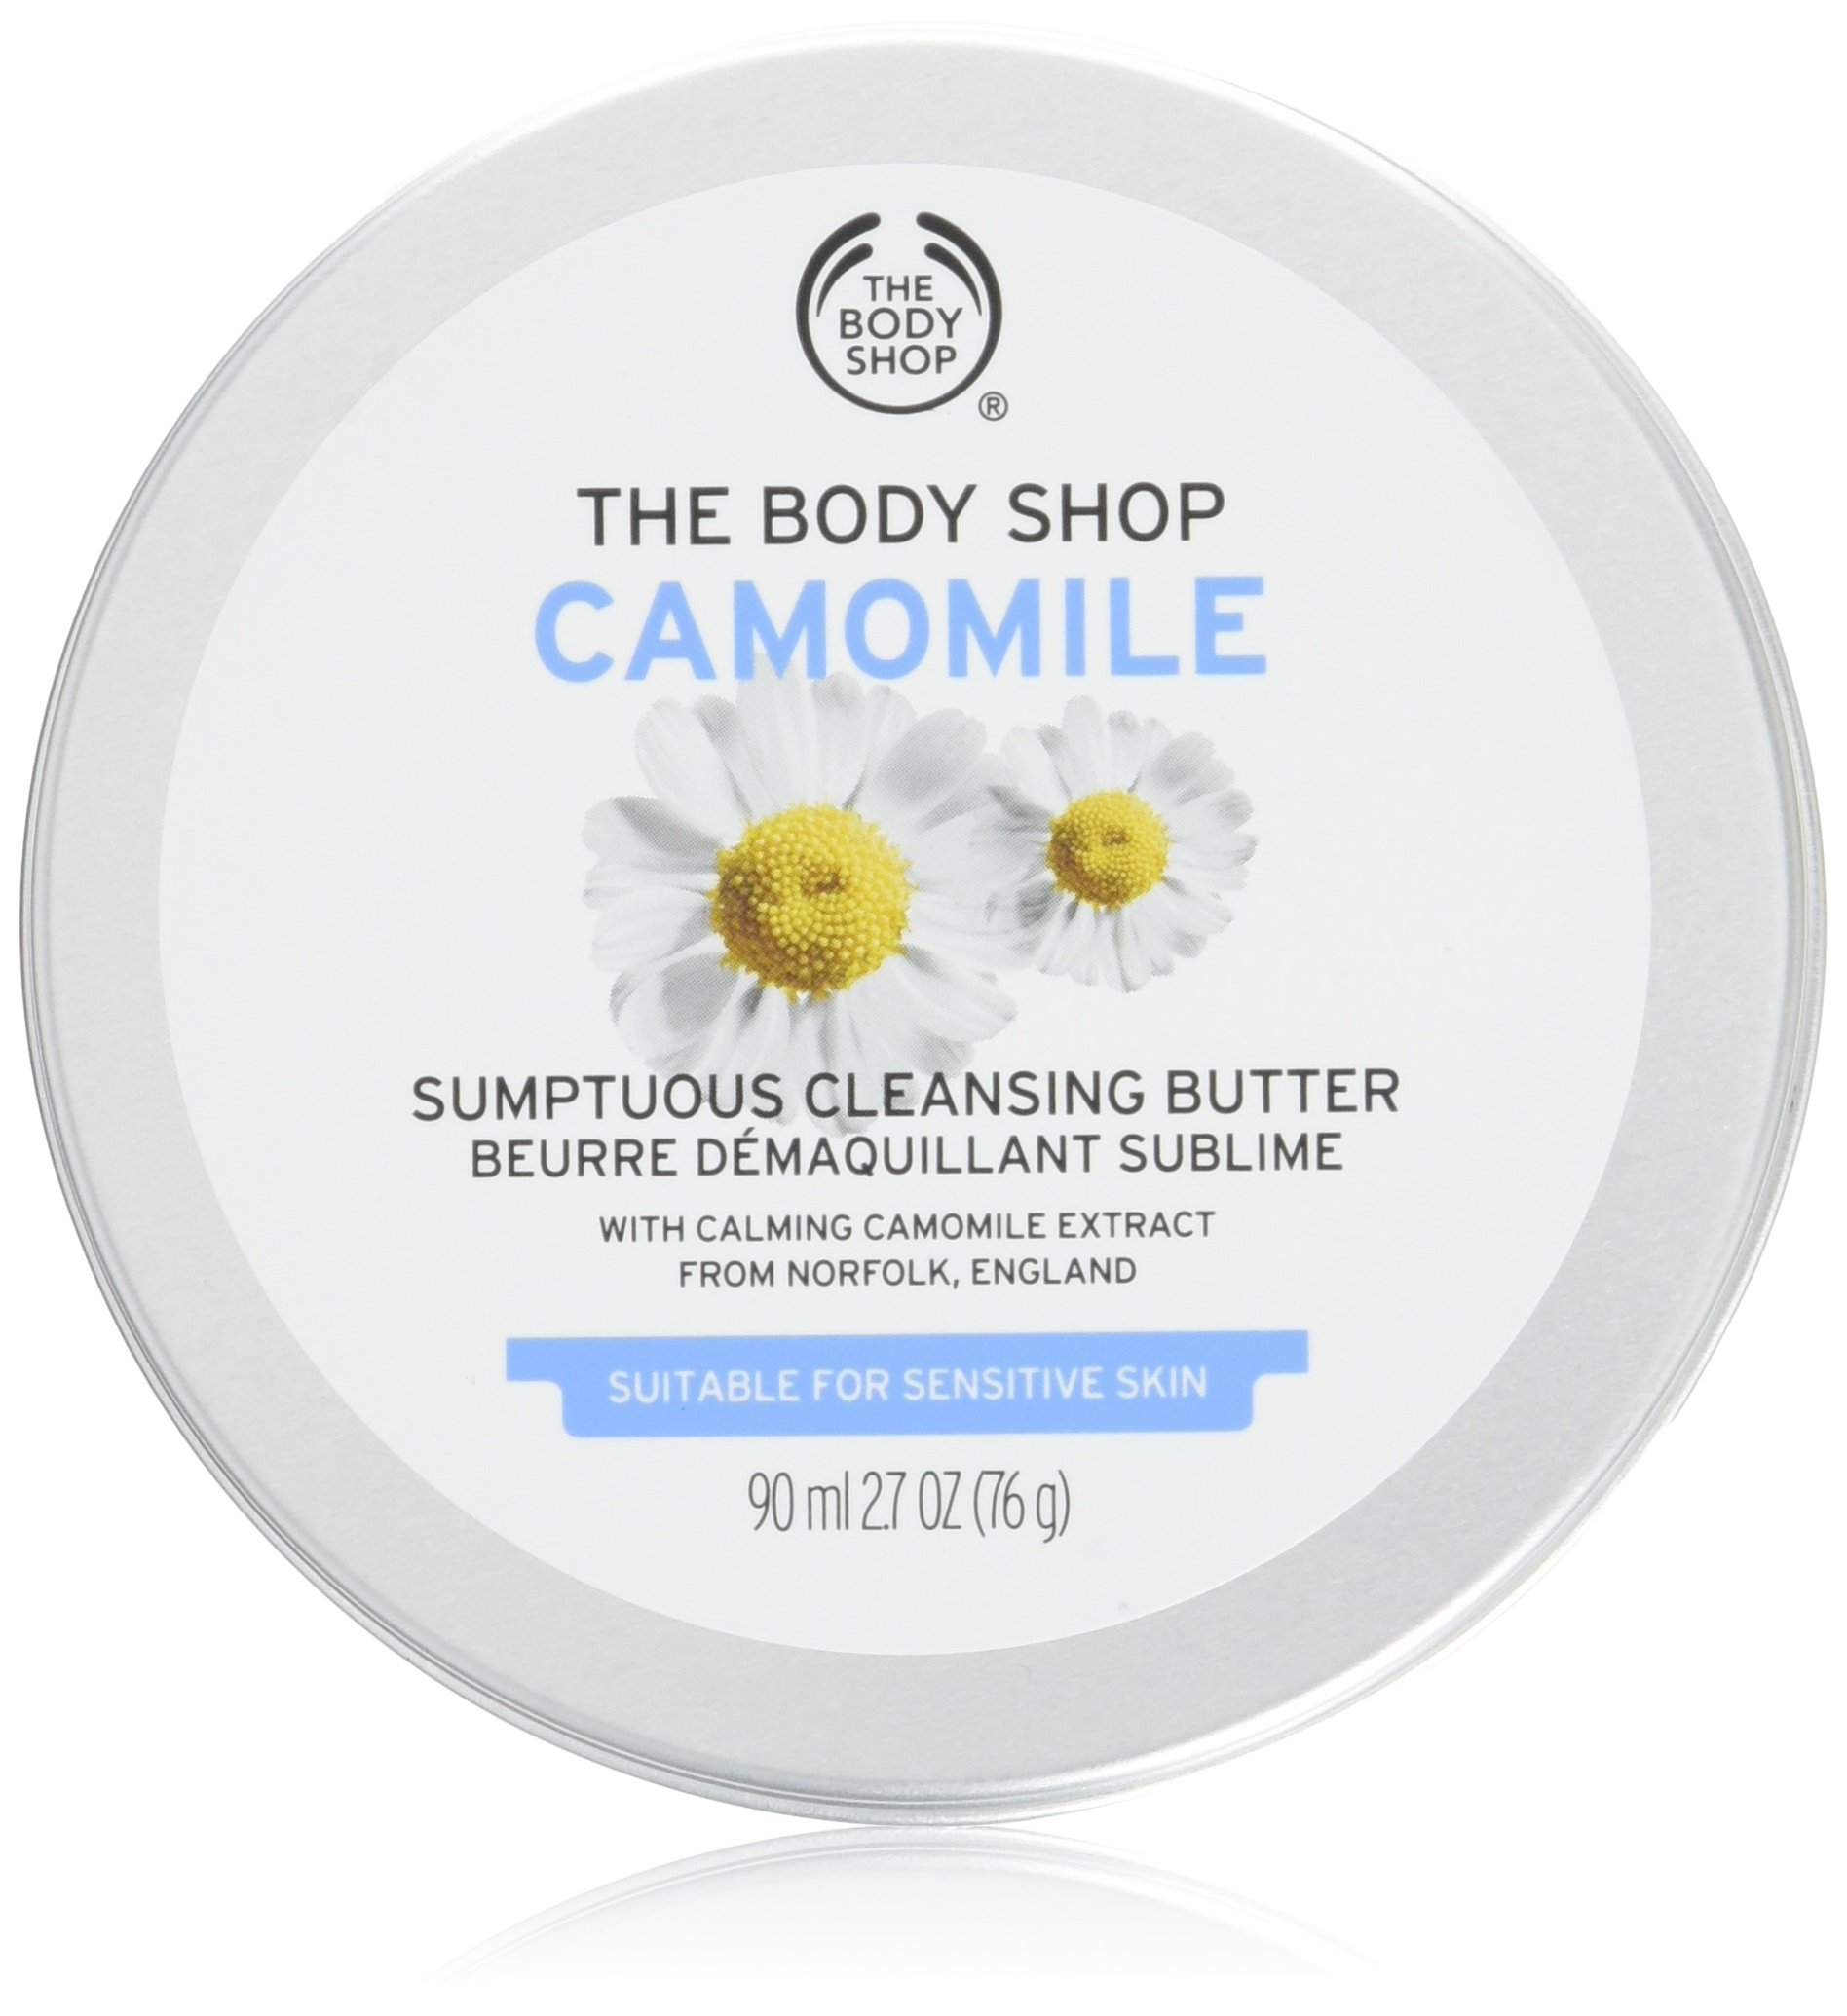 The Body Shop Camomile Sumptuous Cleansing Butter, 2.7 Oz by The Body Shop